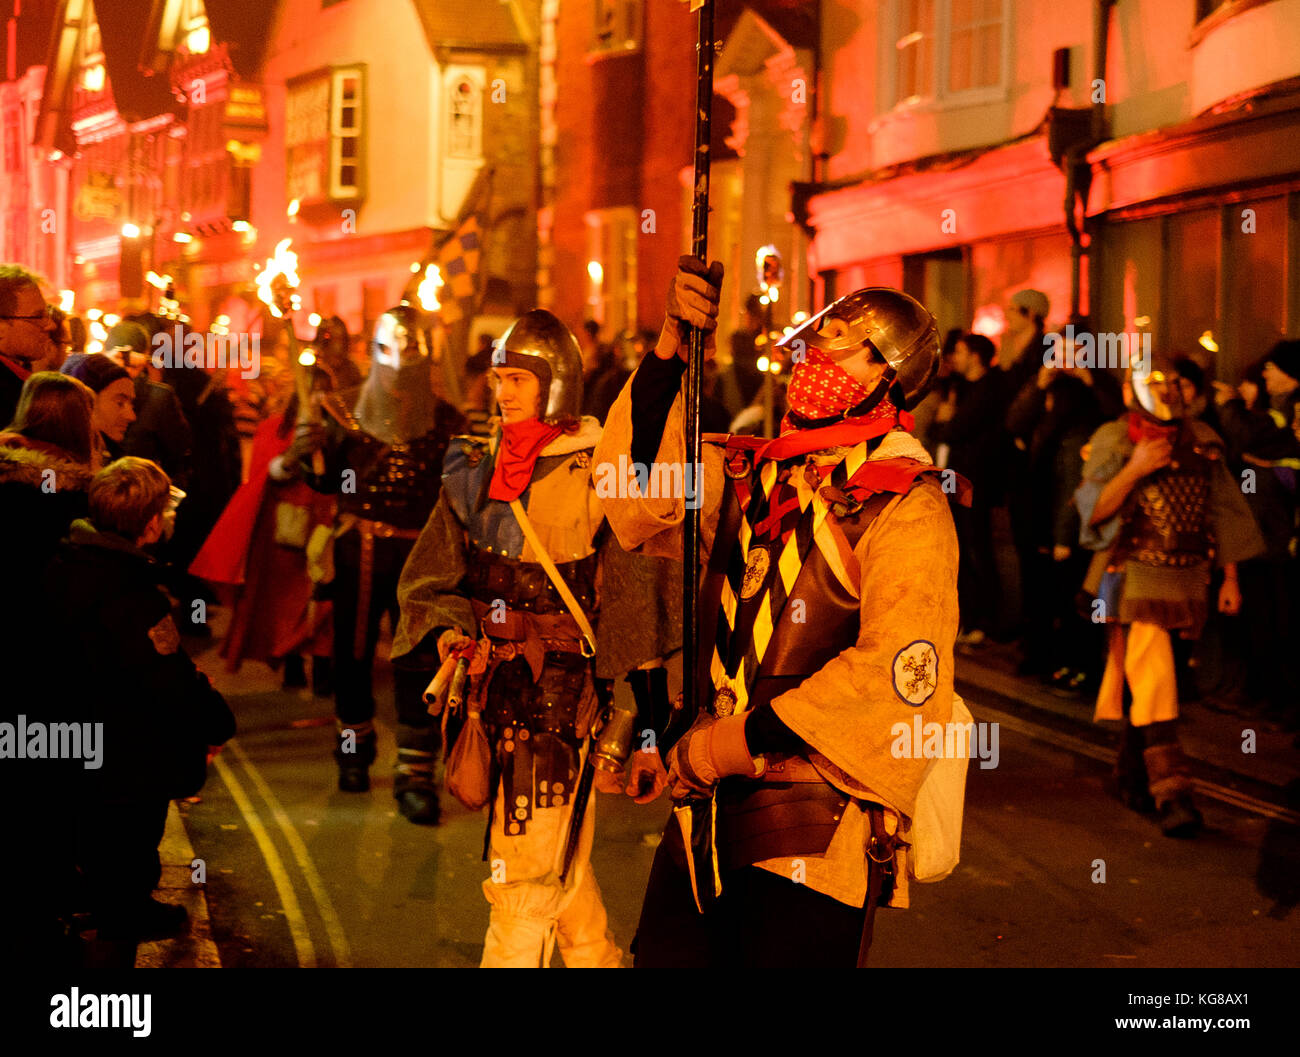 Lewes, UK - 4 November 2017: Participants from Borough Bonfire Society in torchlit processions at Lewes Bonfire - Stock Image